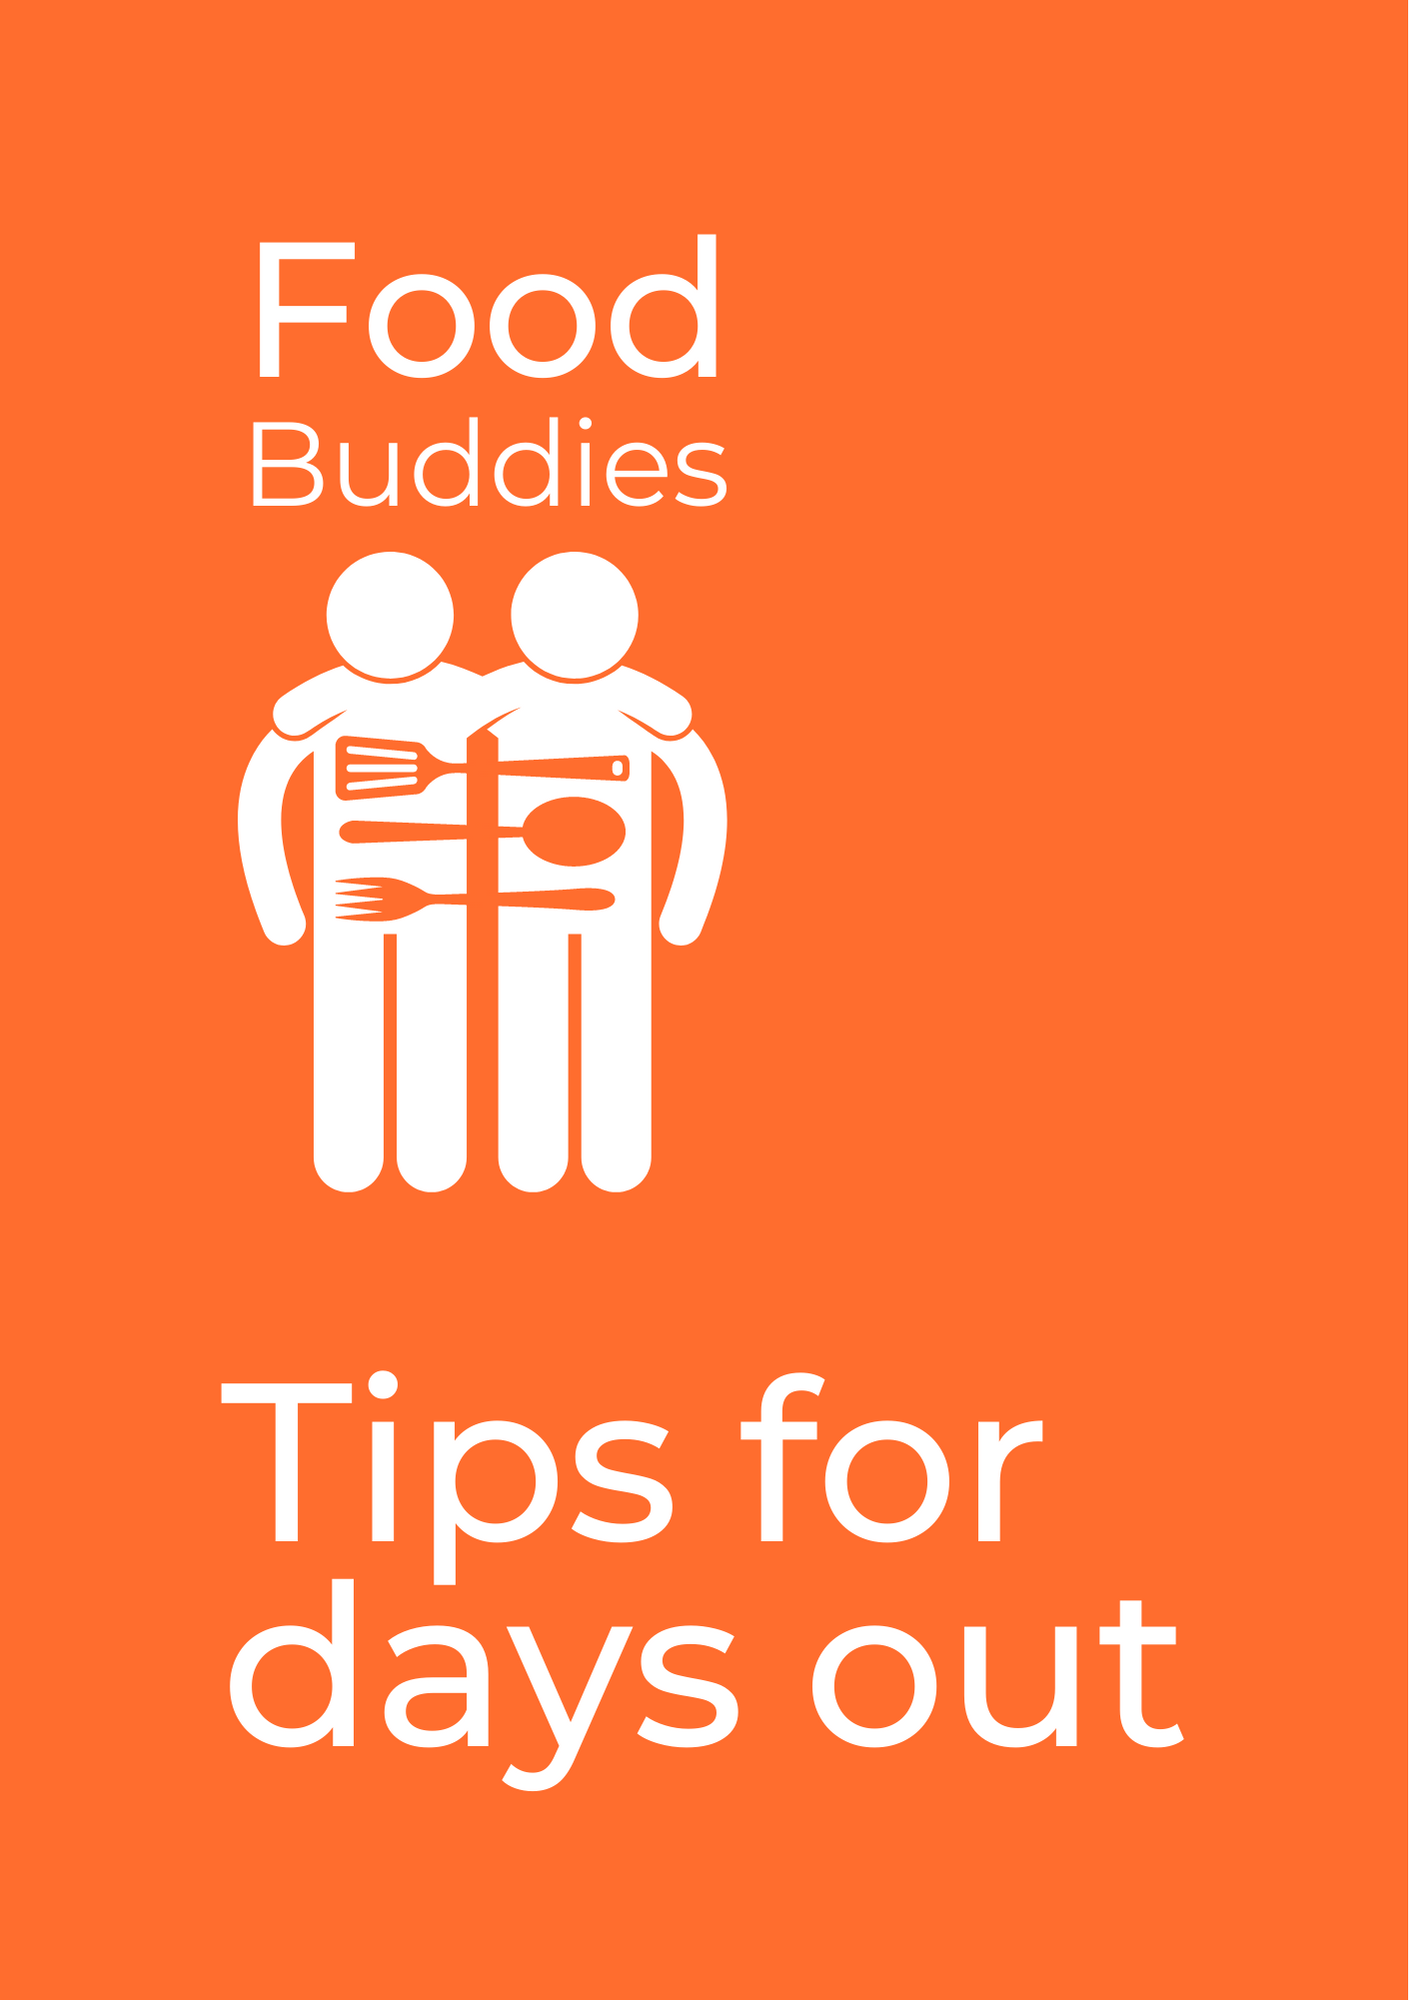 Food Buddies - Tips for days out